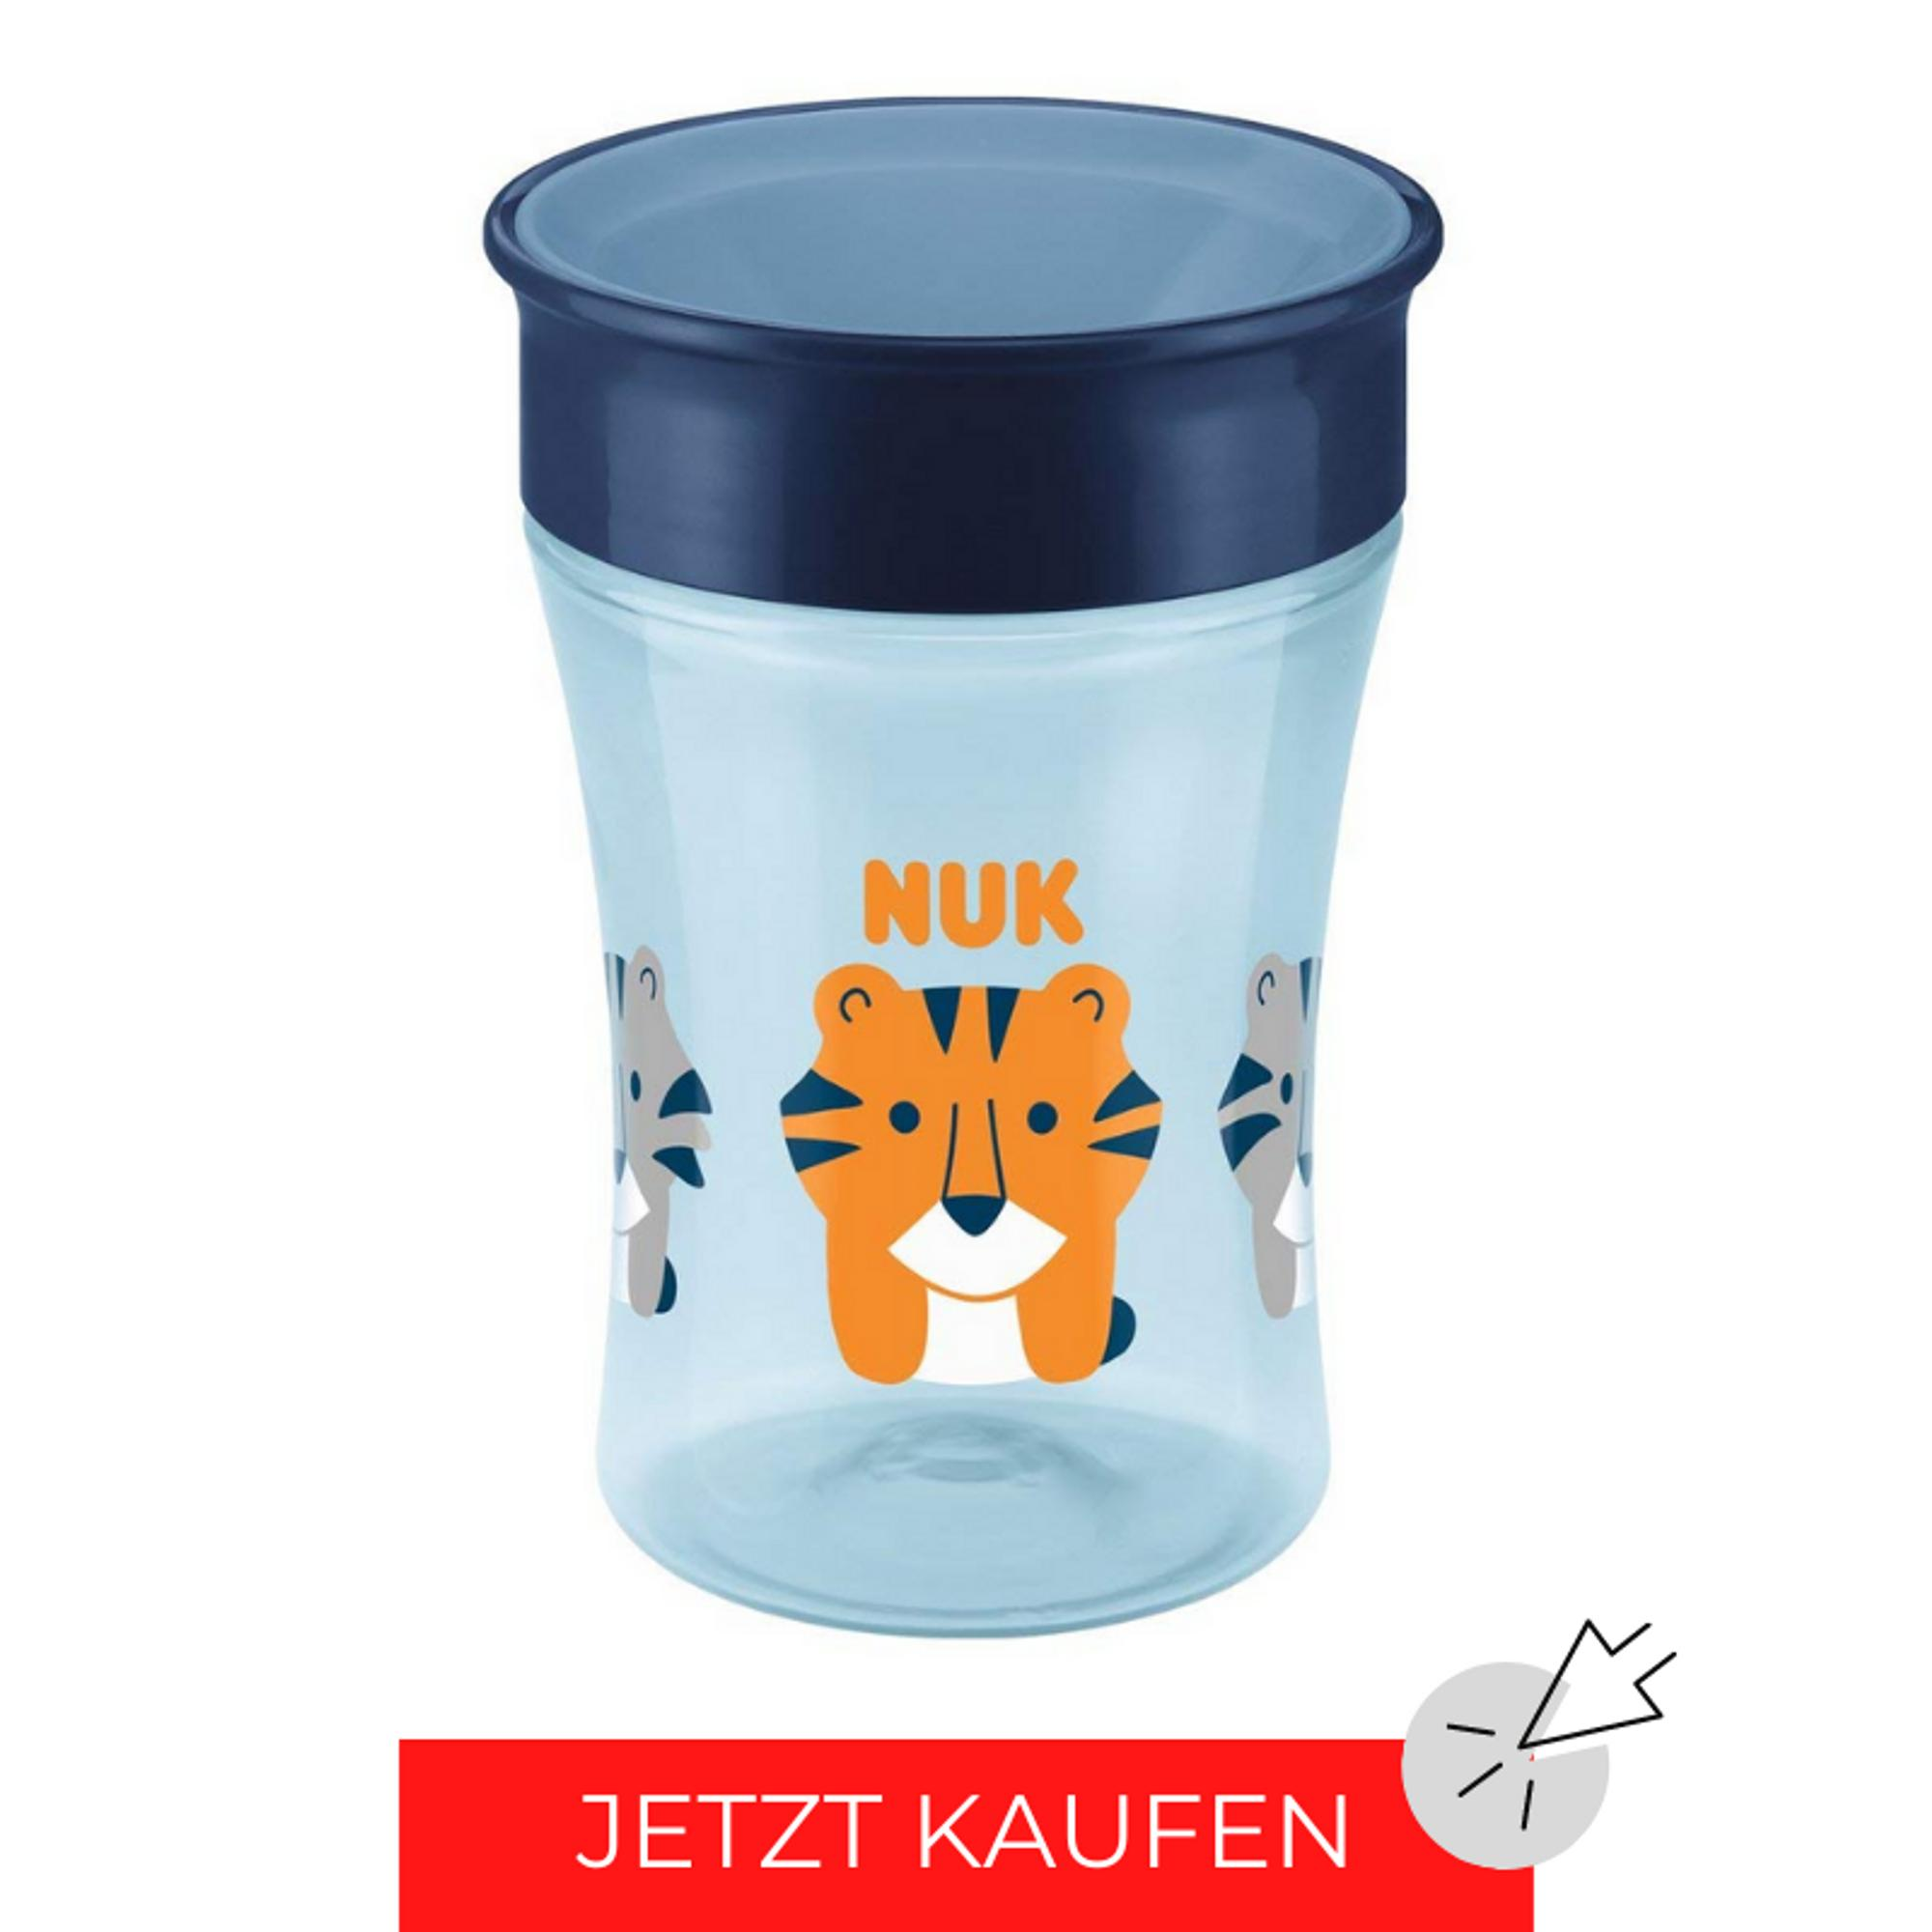 NUK Magic Cup: blau mit Tiger-Muster